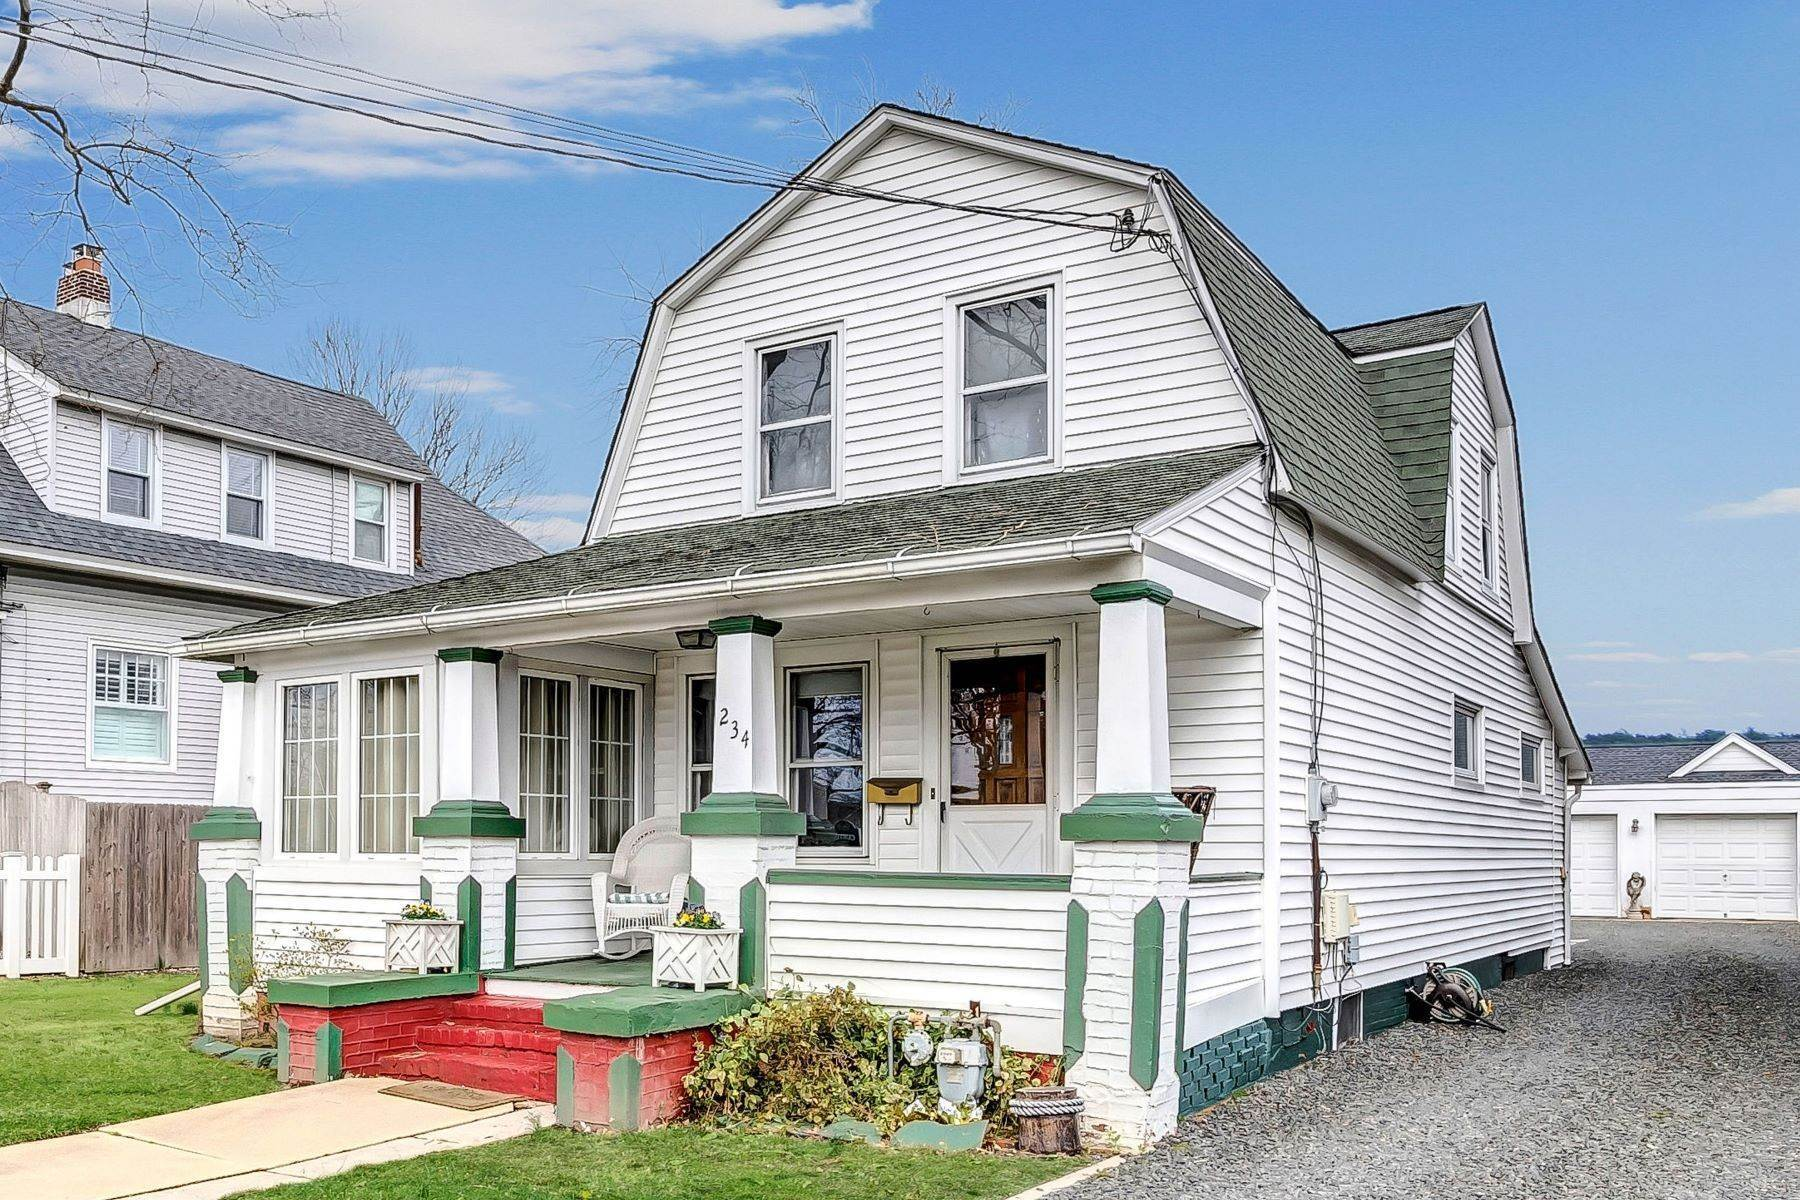 Single Family Homes for Sale at Coming Soon 234 E Main Street Manasquan, New Jersey 08736 United States